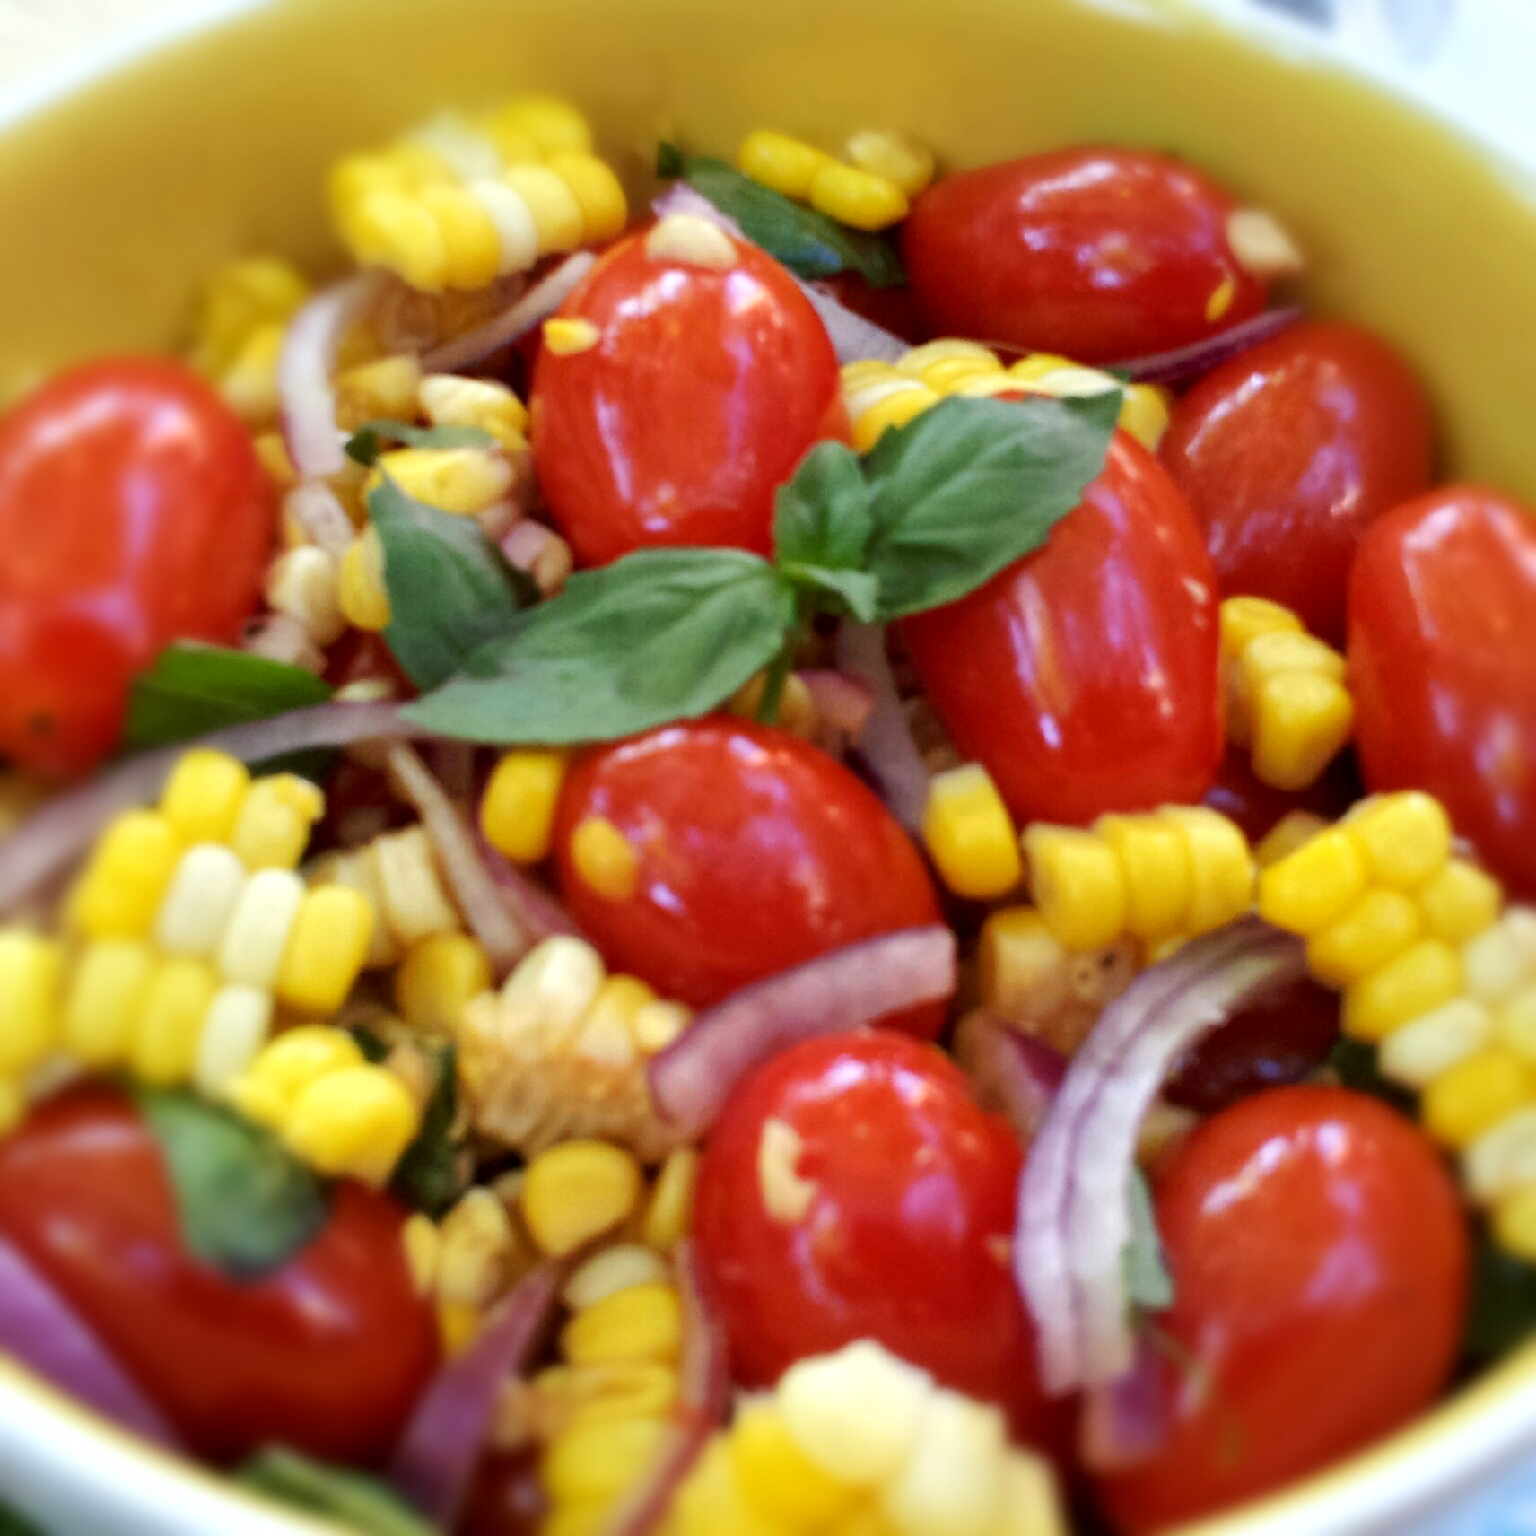 salad sweetcorn salad sweet corn salad is a popular sweet corn salad ...